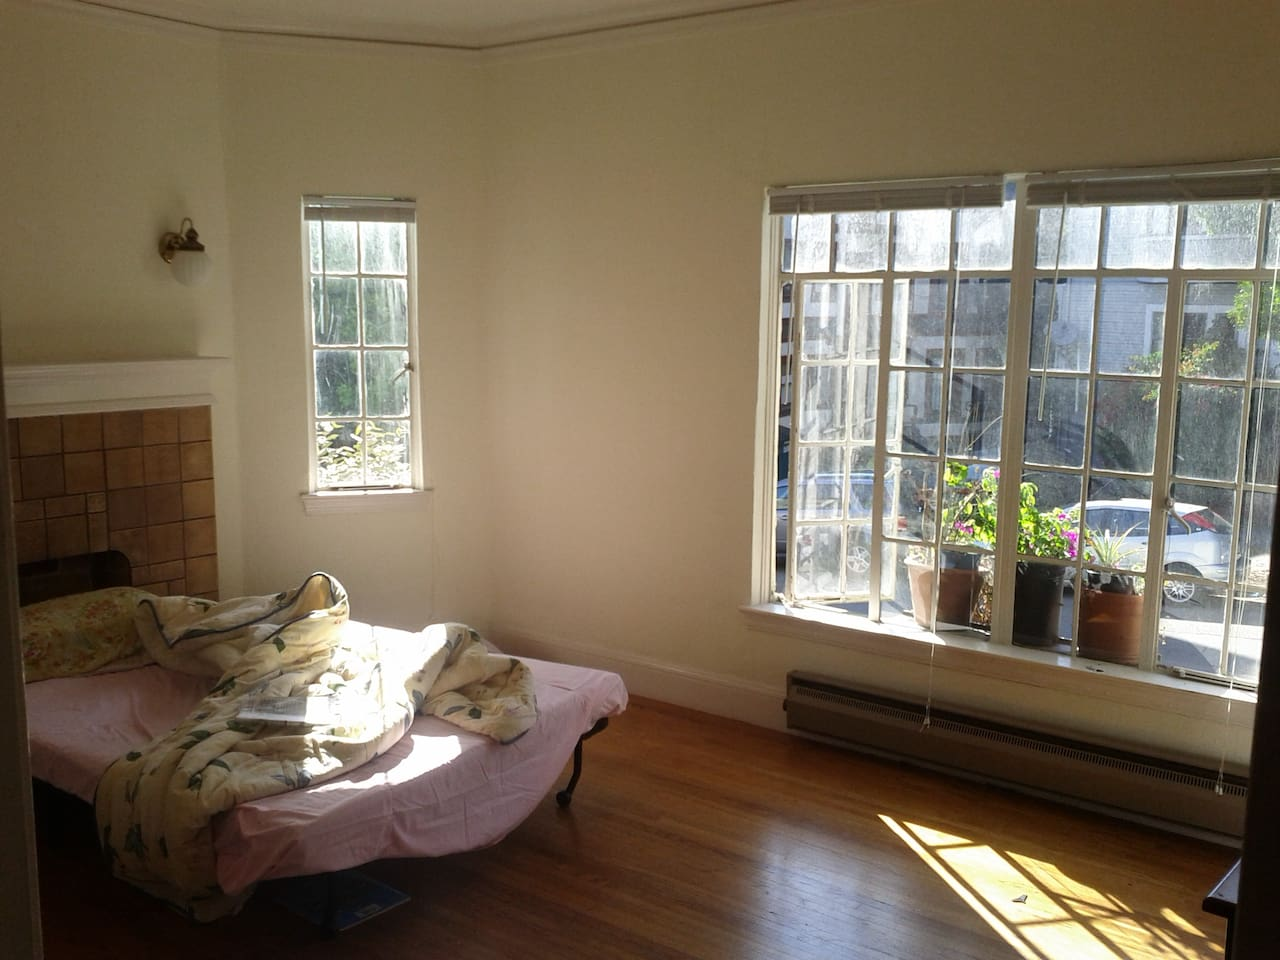 Large, light bedroom with a view, by Lake Merritt - Apartments for ...